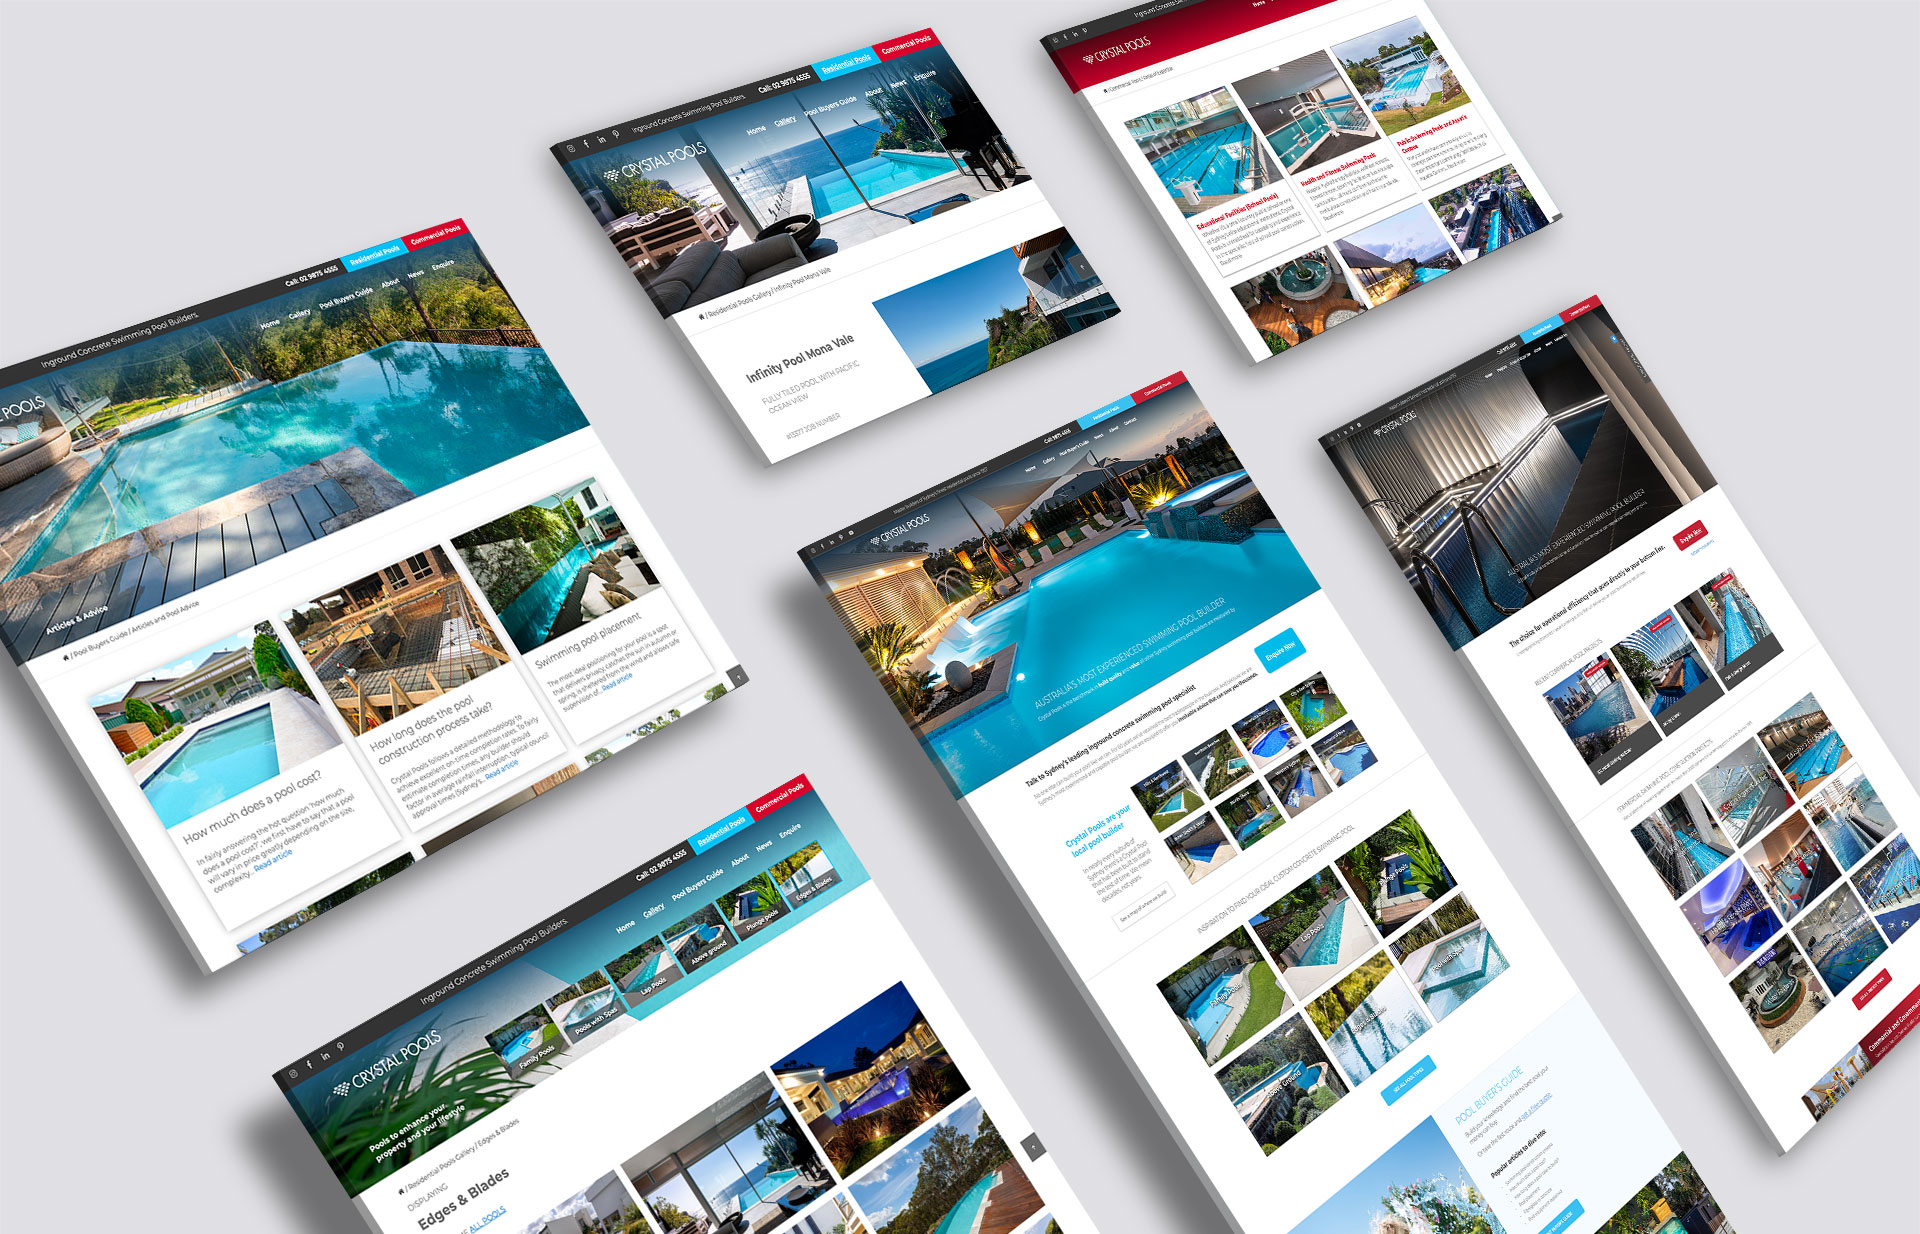 Website User Experience Design, Production and Content Creation